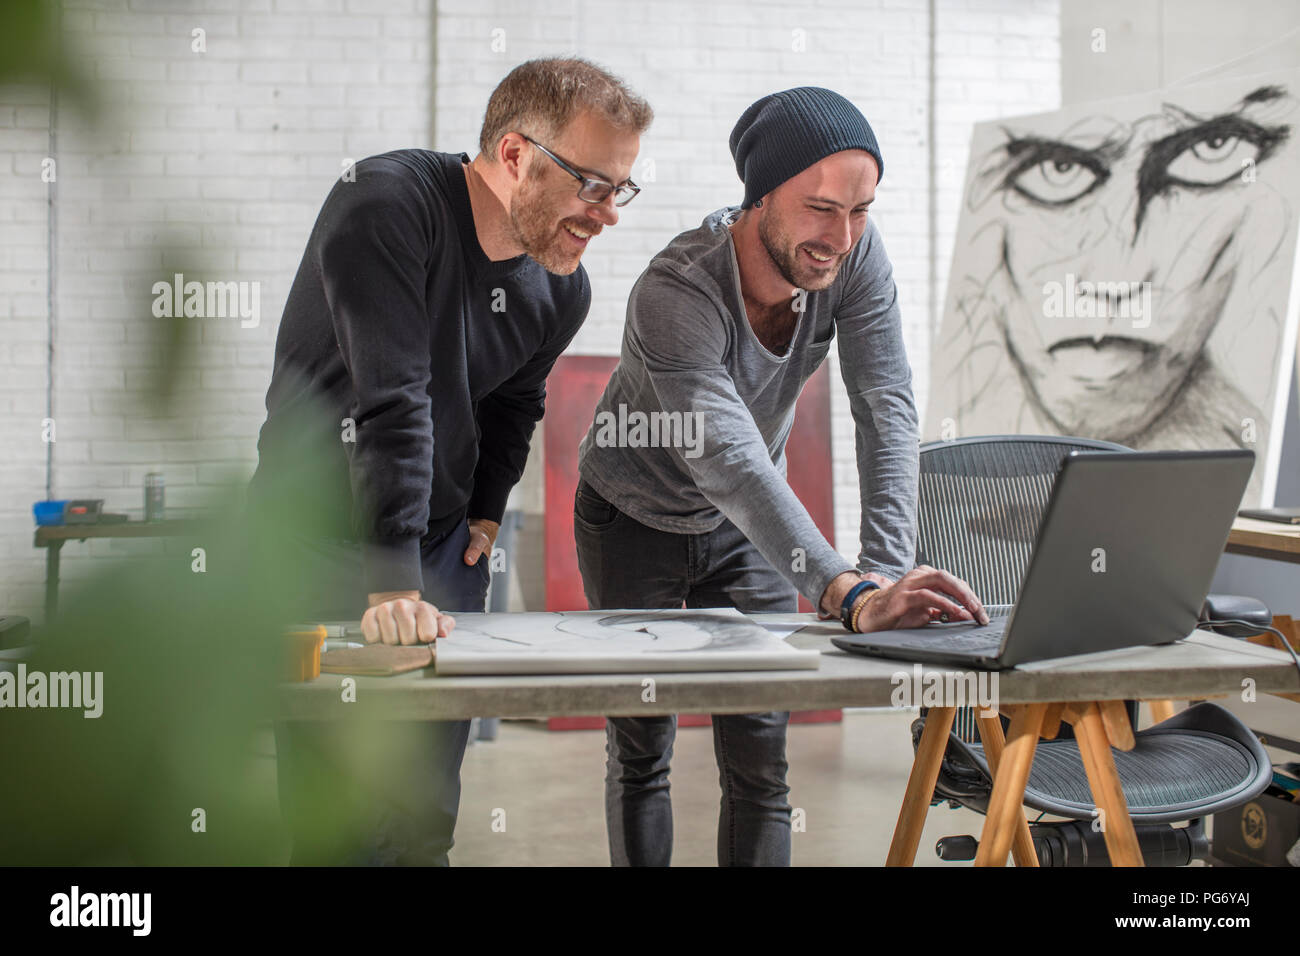 Smiling artist using laptop with man in studio - Stock Image